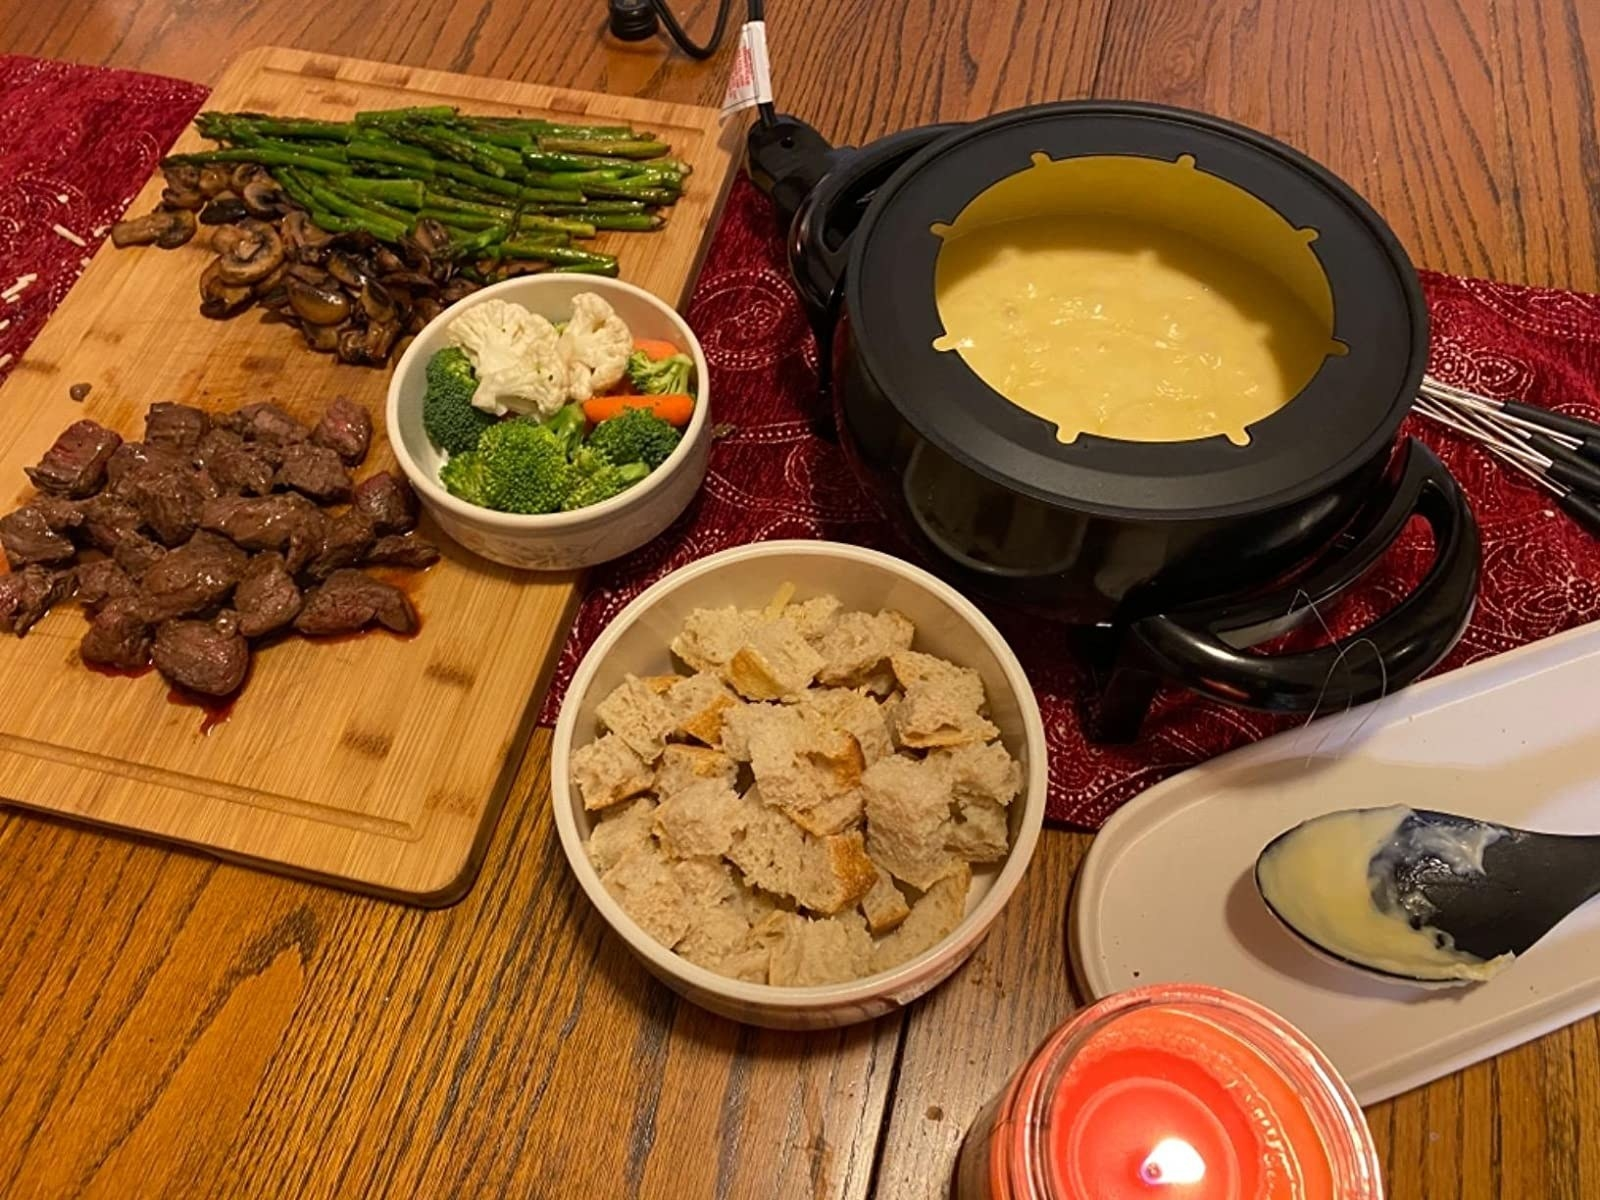 Reviewer photo of fondue poe with melted cheese and various meats, veggies, and bread